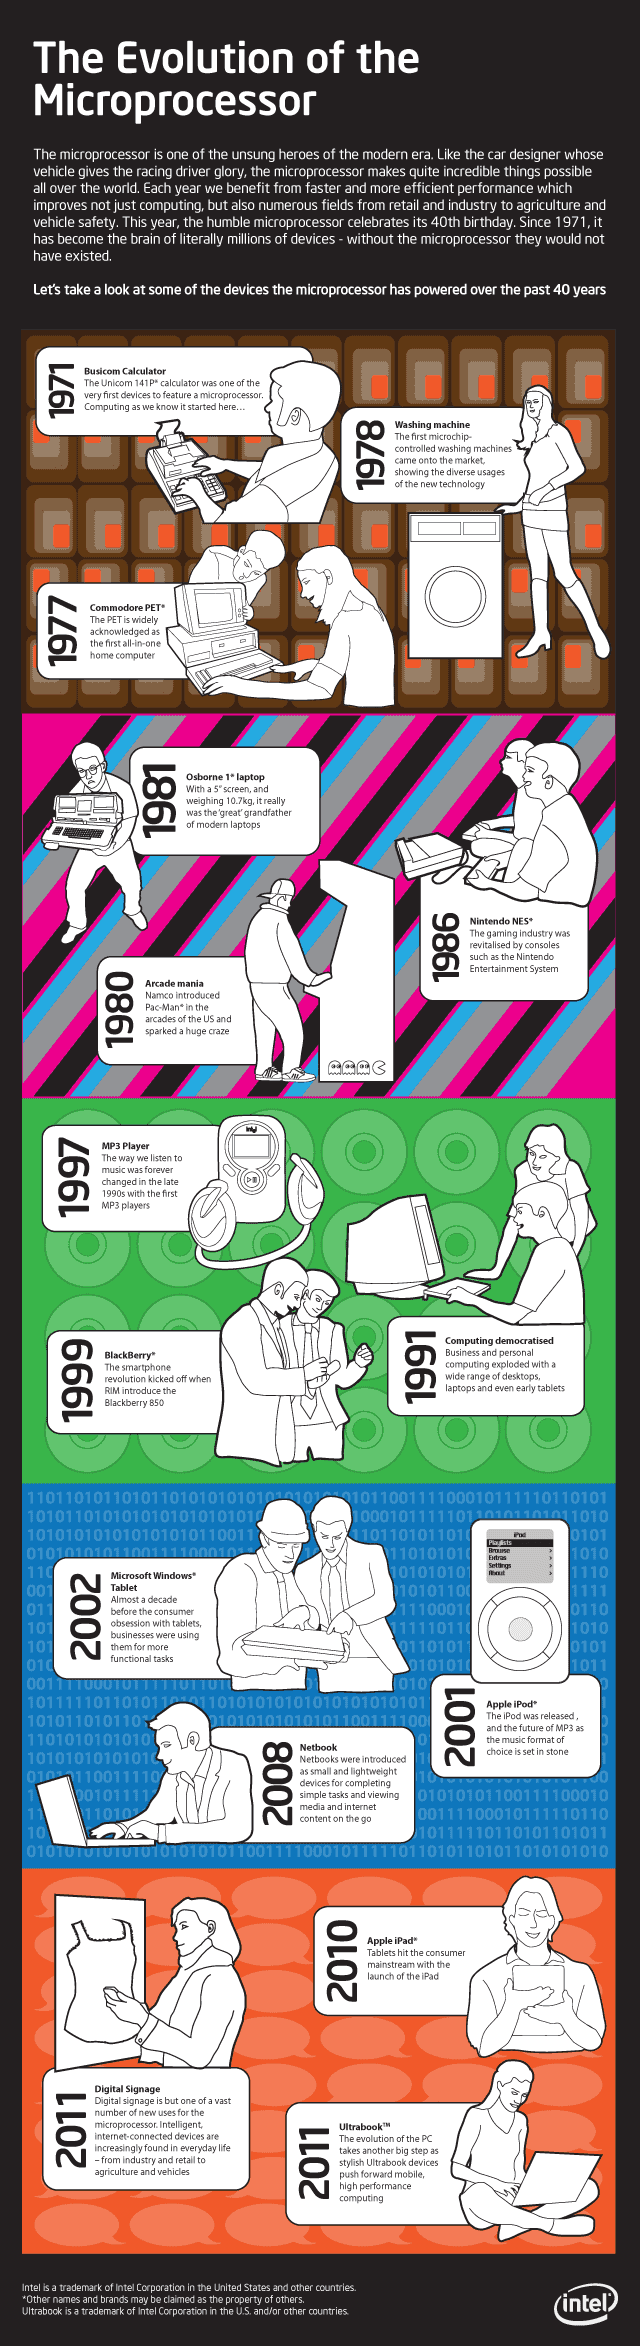 The Evolution Of Microprocessor [Infographic Via Intel]  (1)